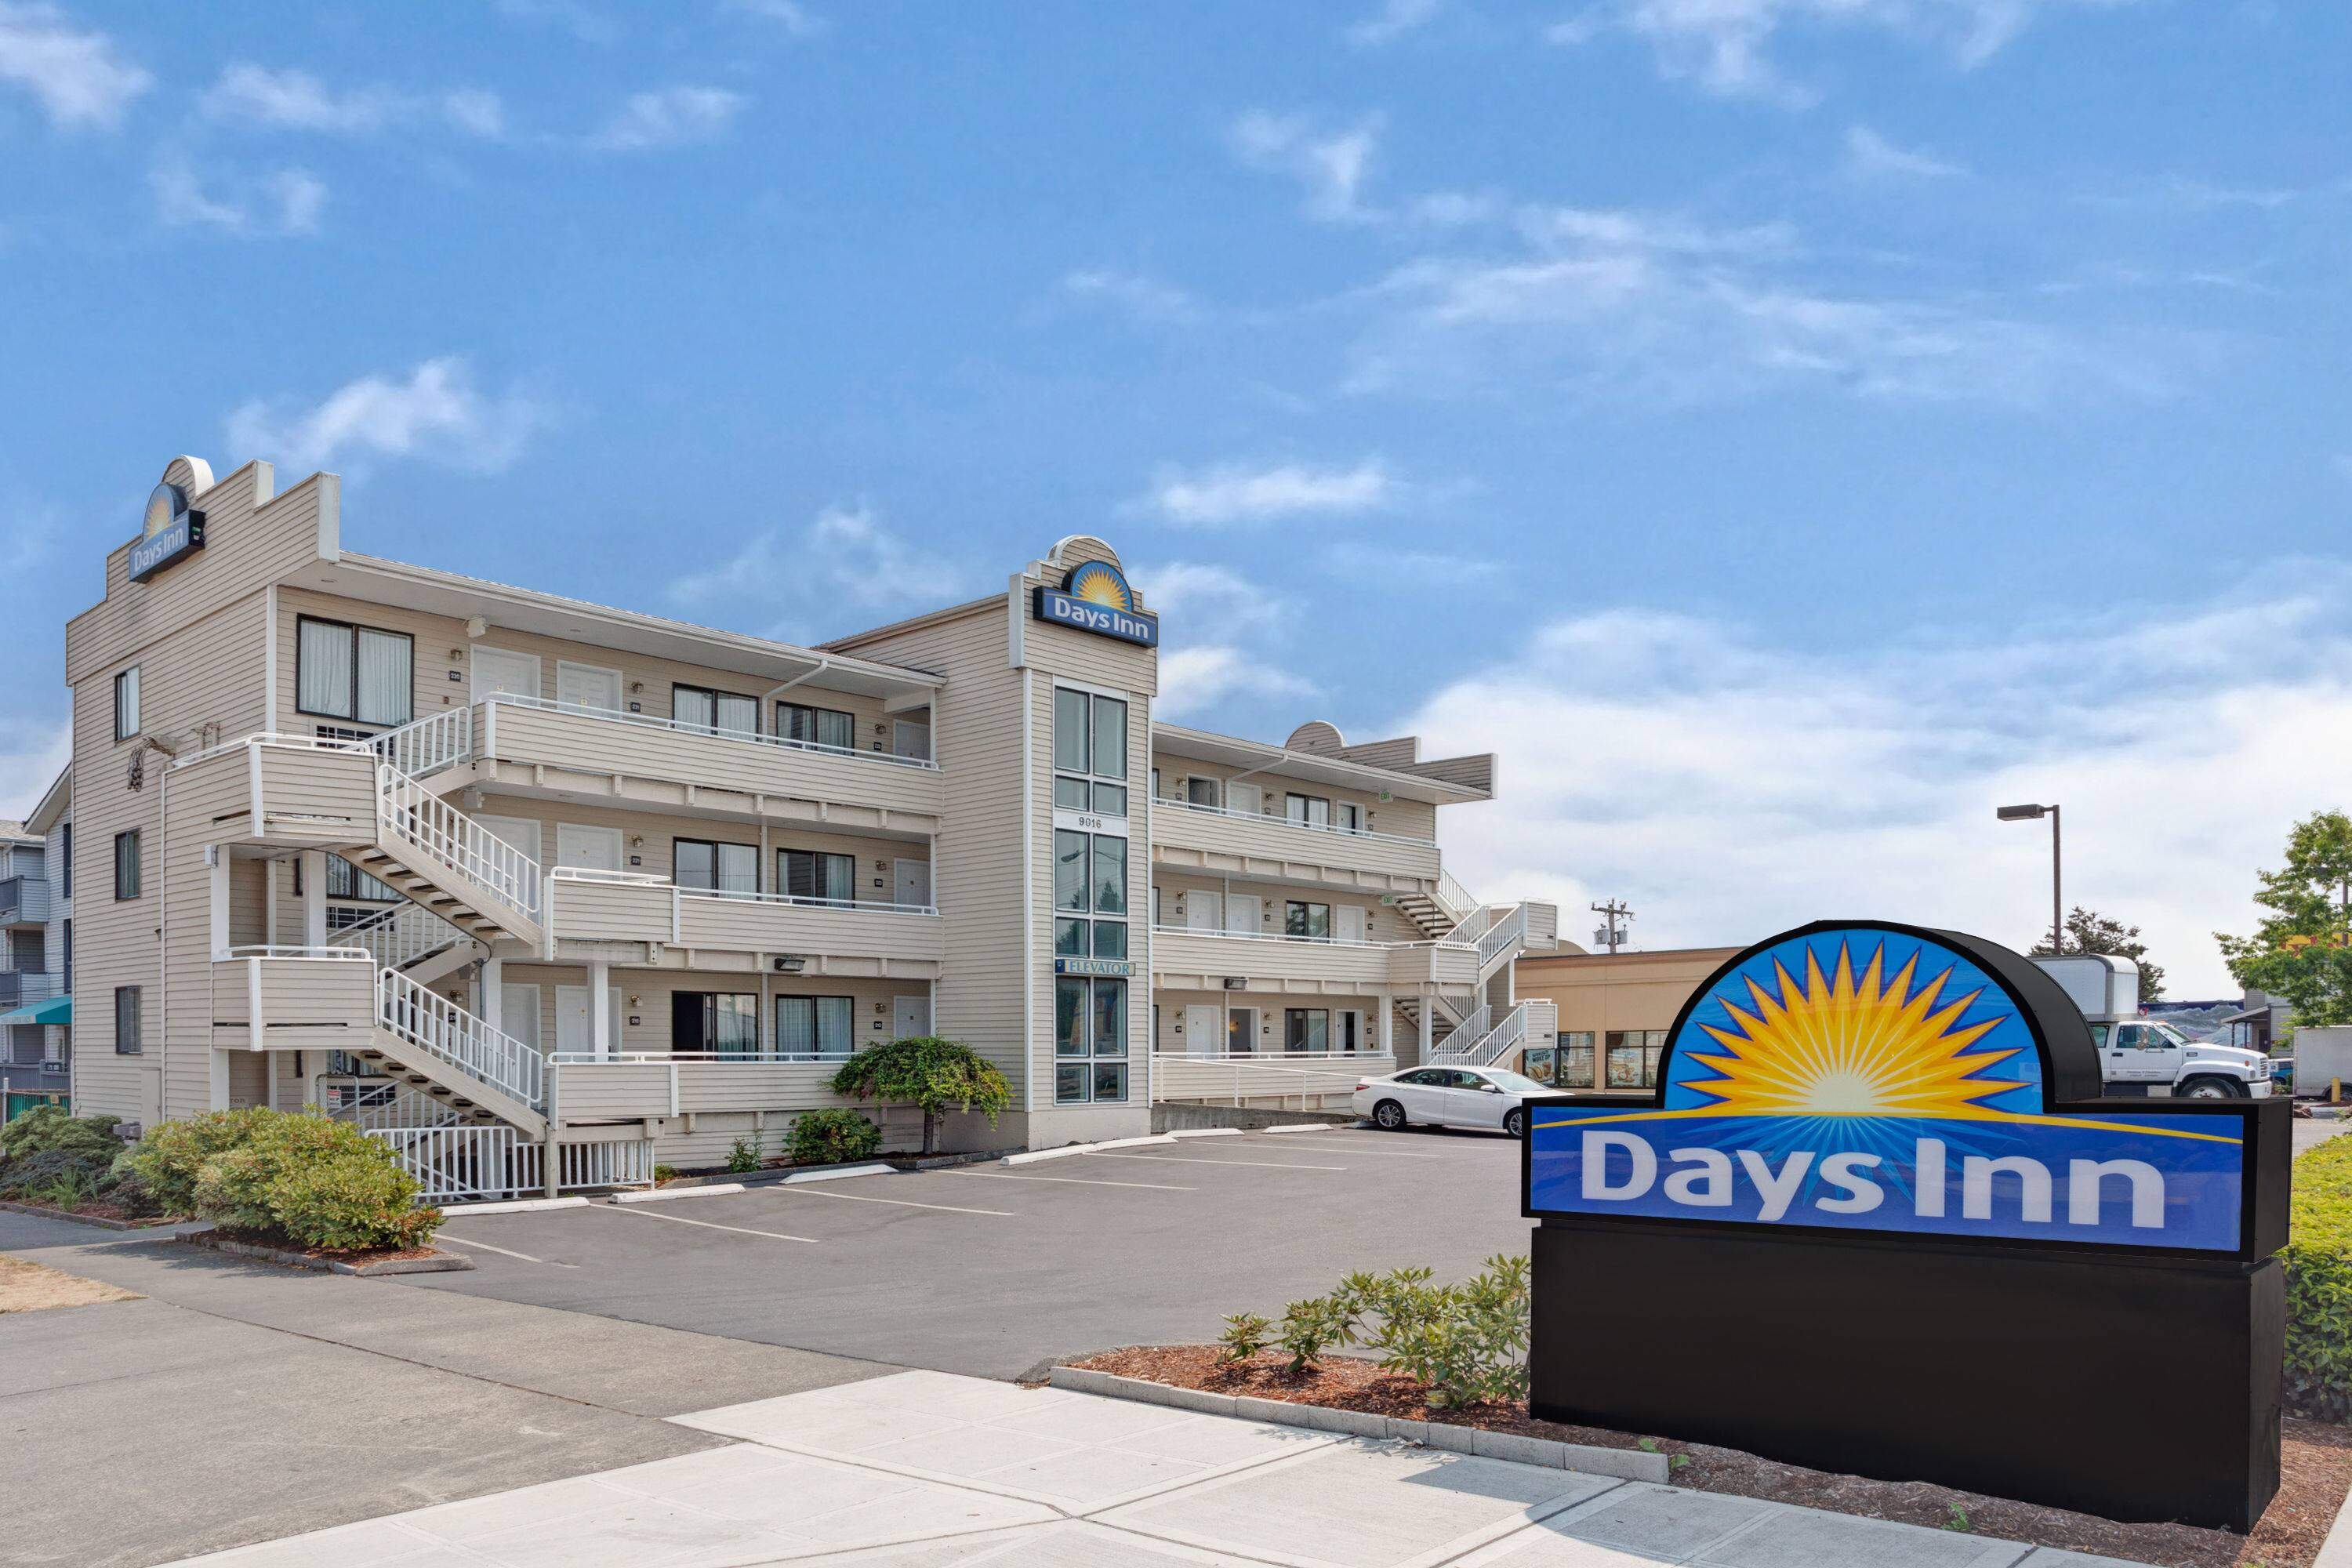 Exterior of Days Inn by Wyndham Seattle